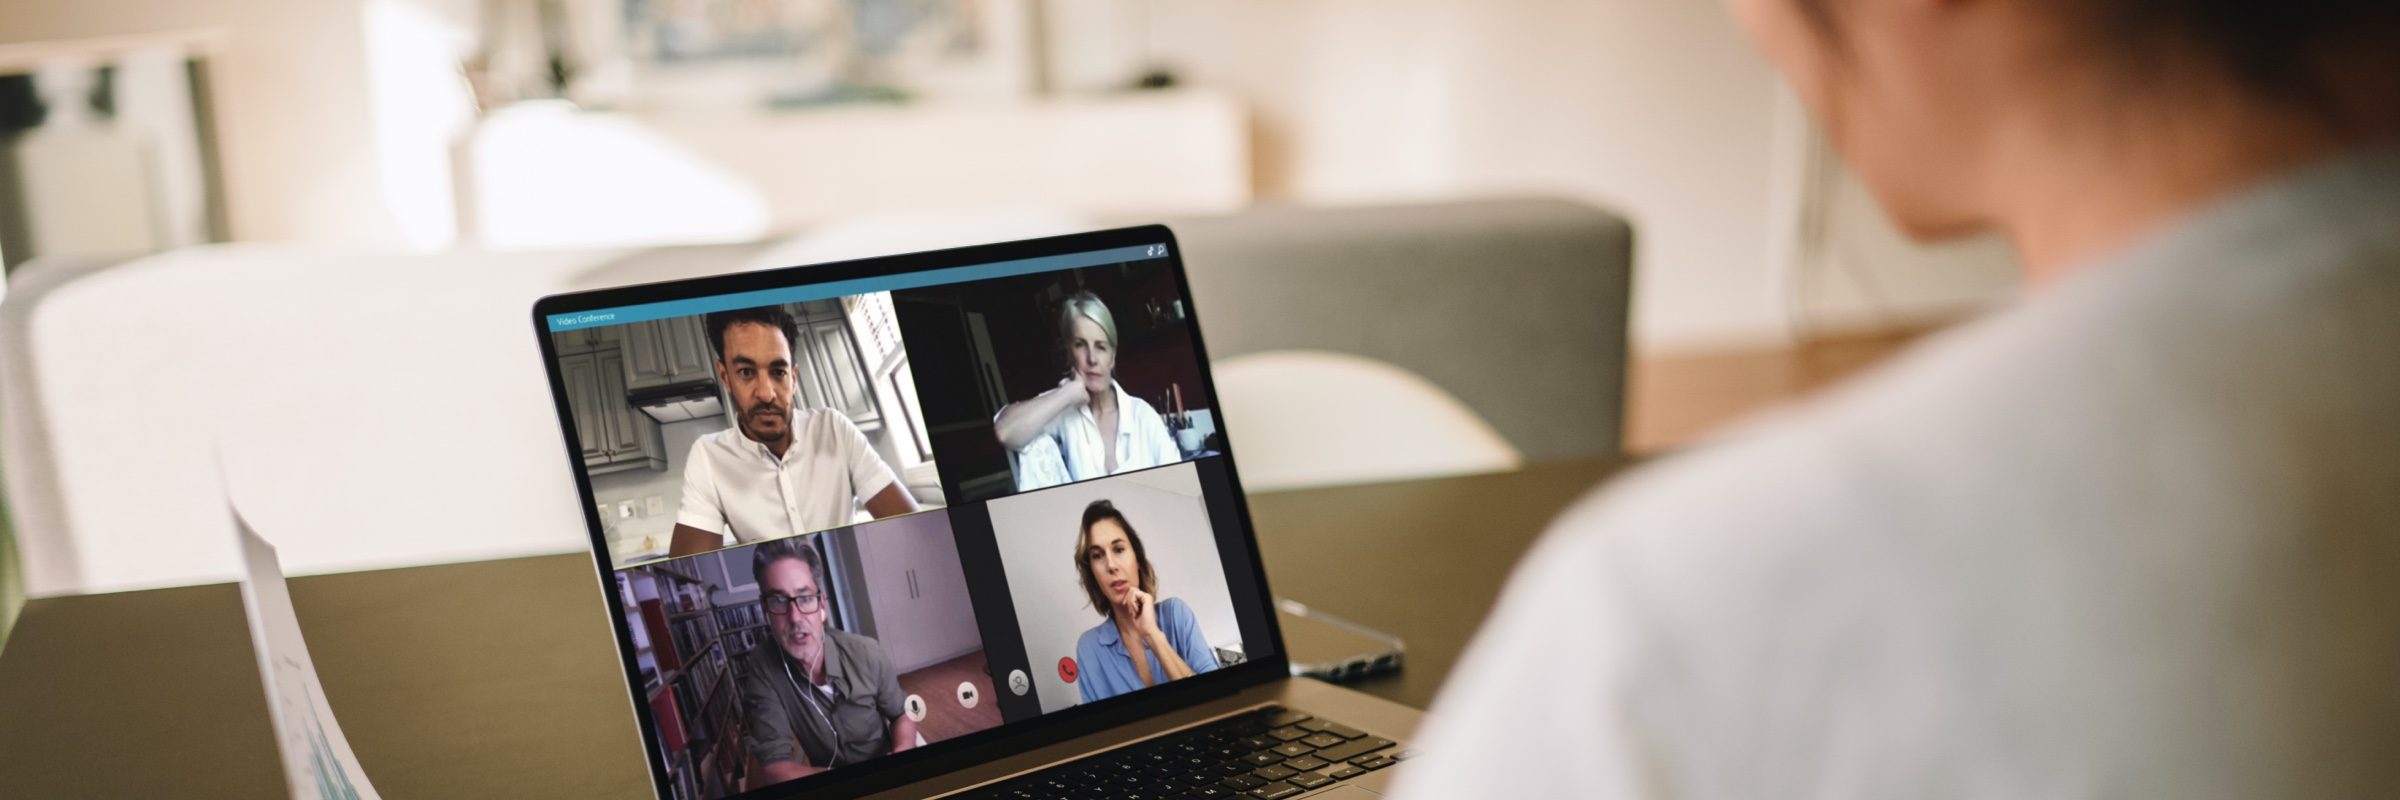 Person having a video call on laptop